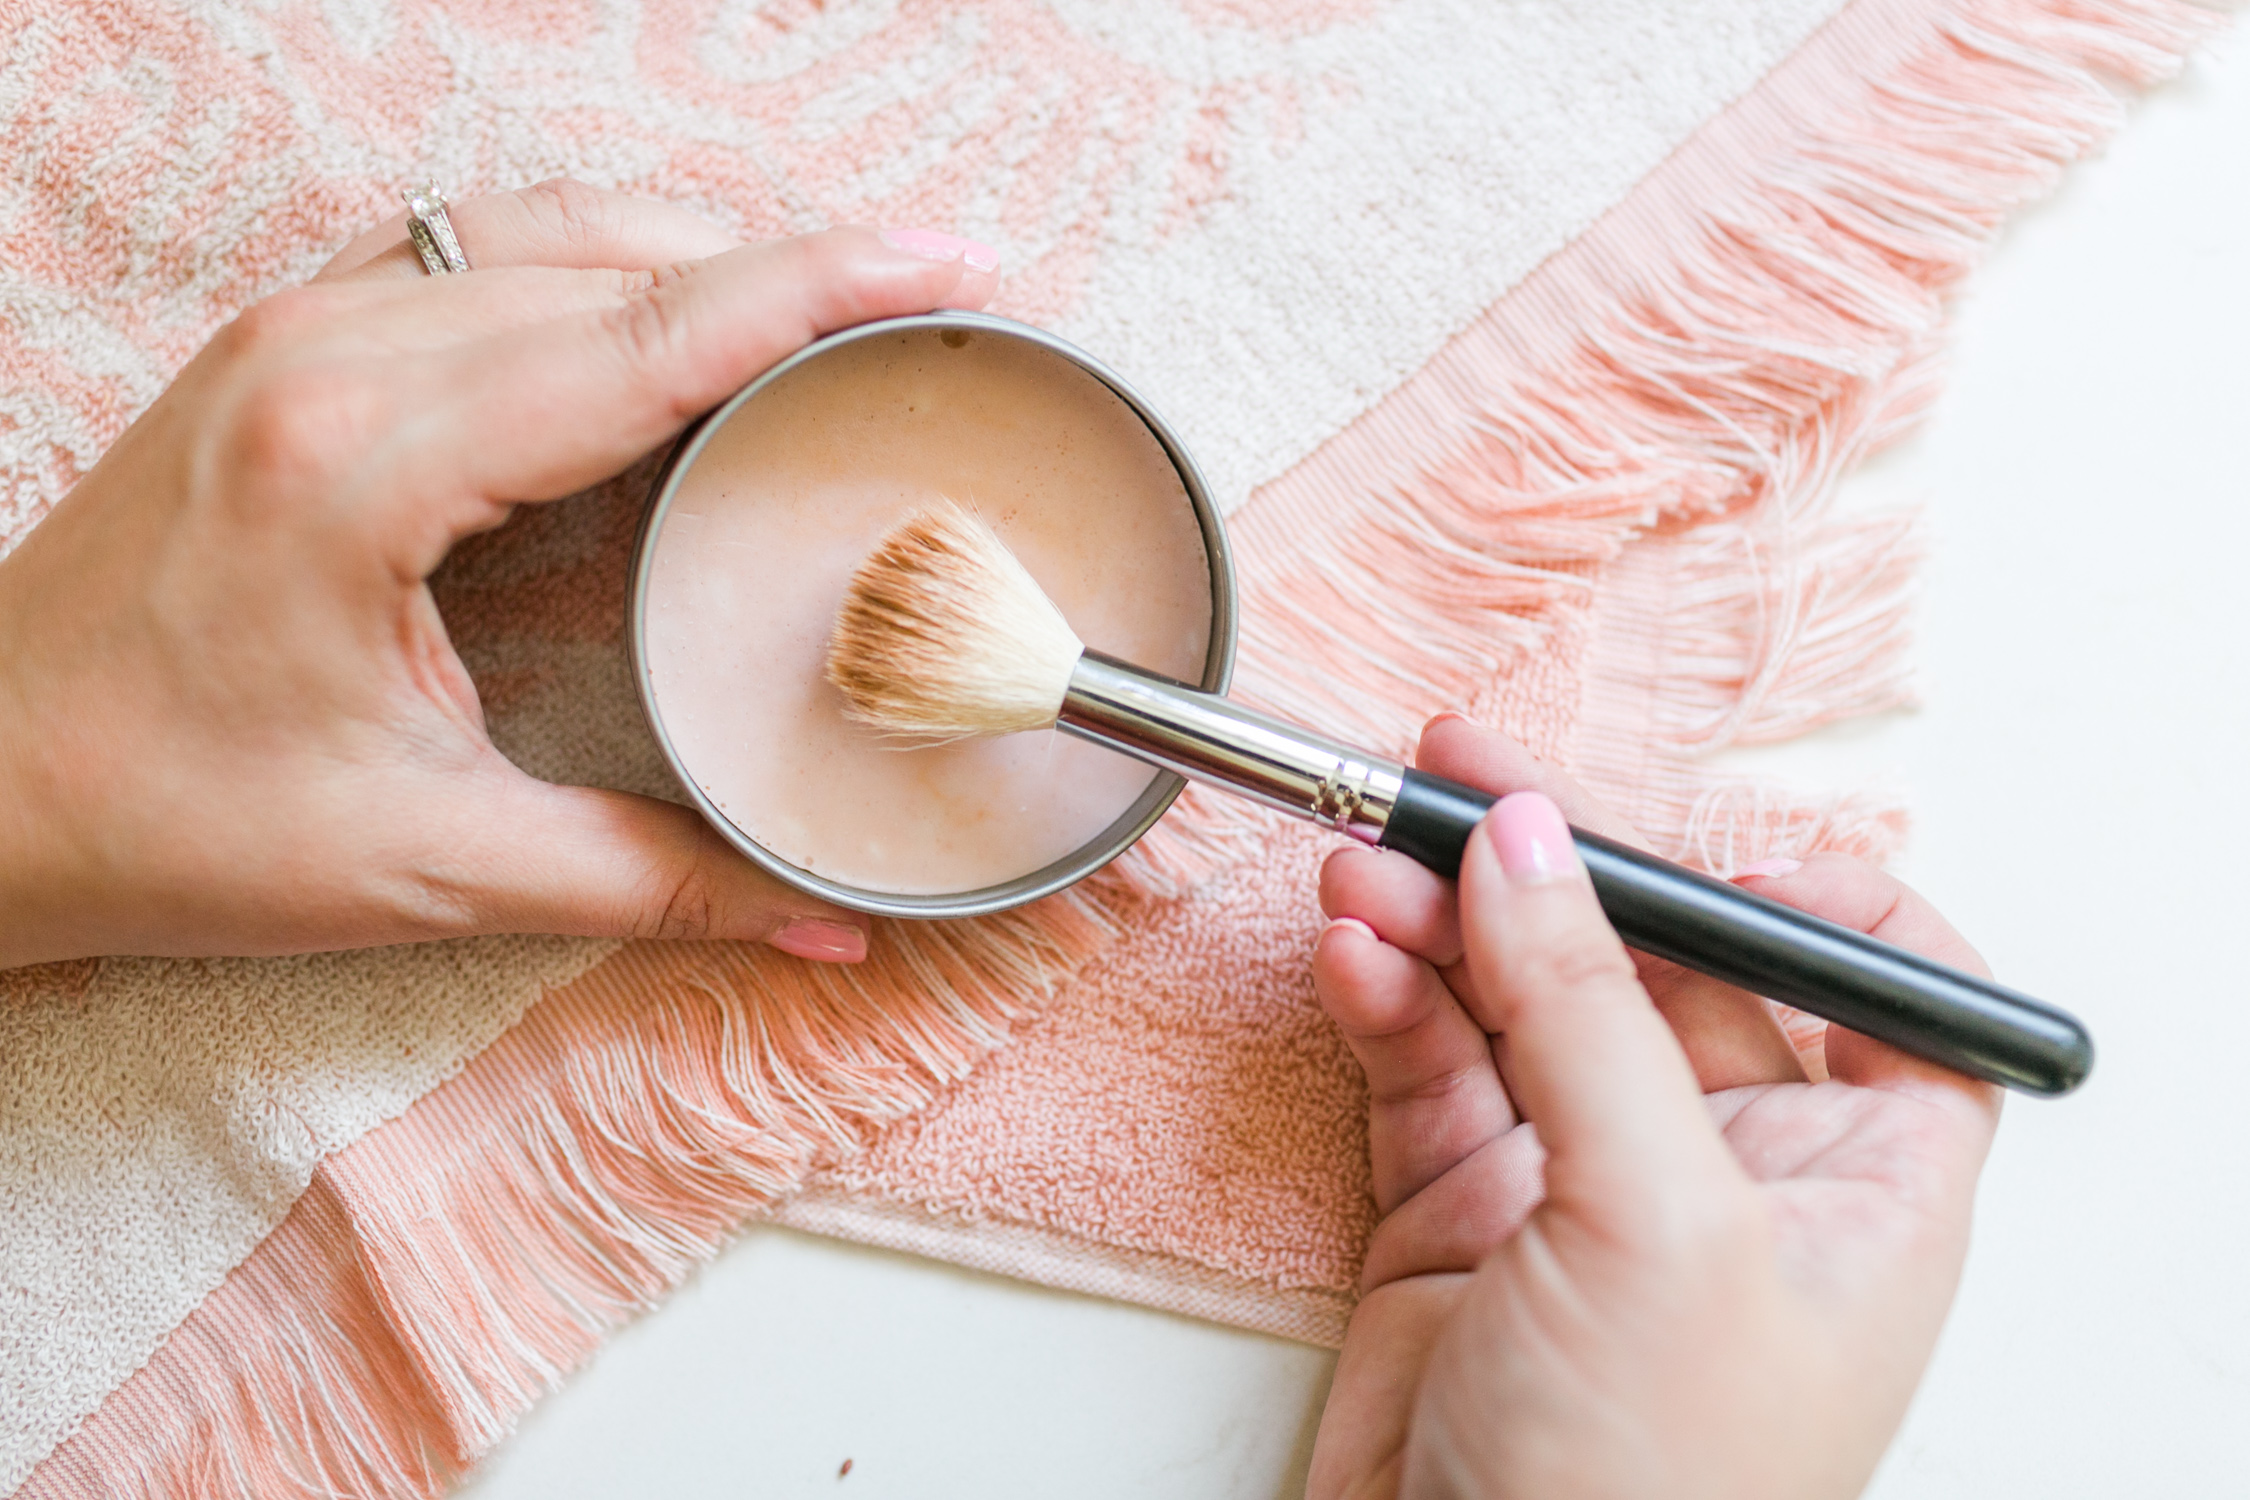 Solid Cleaner for Makeup Brushes and Blenders